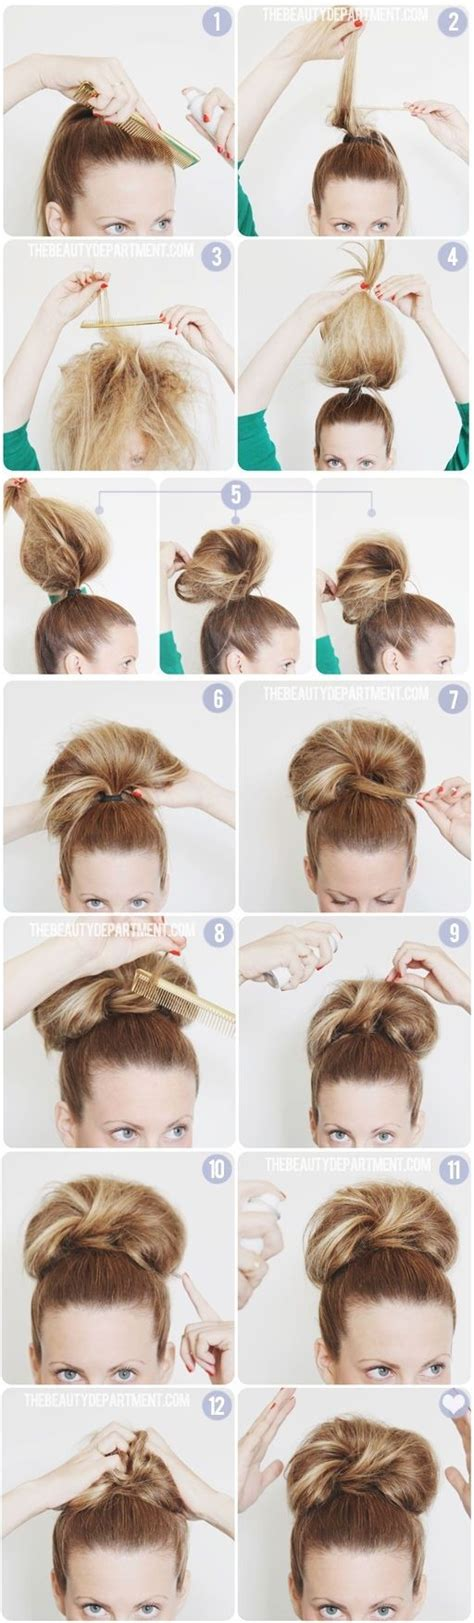 how to do high bun hairstyles 10 super easy updo hairstyles tutorials popular haircuts